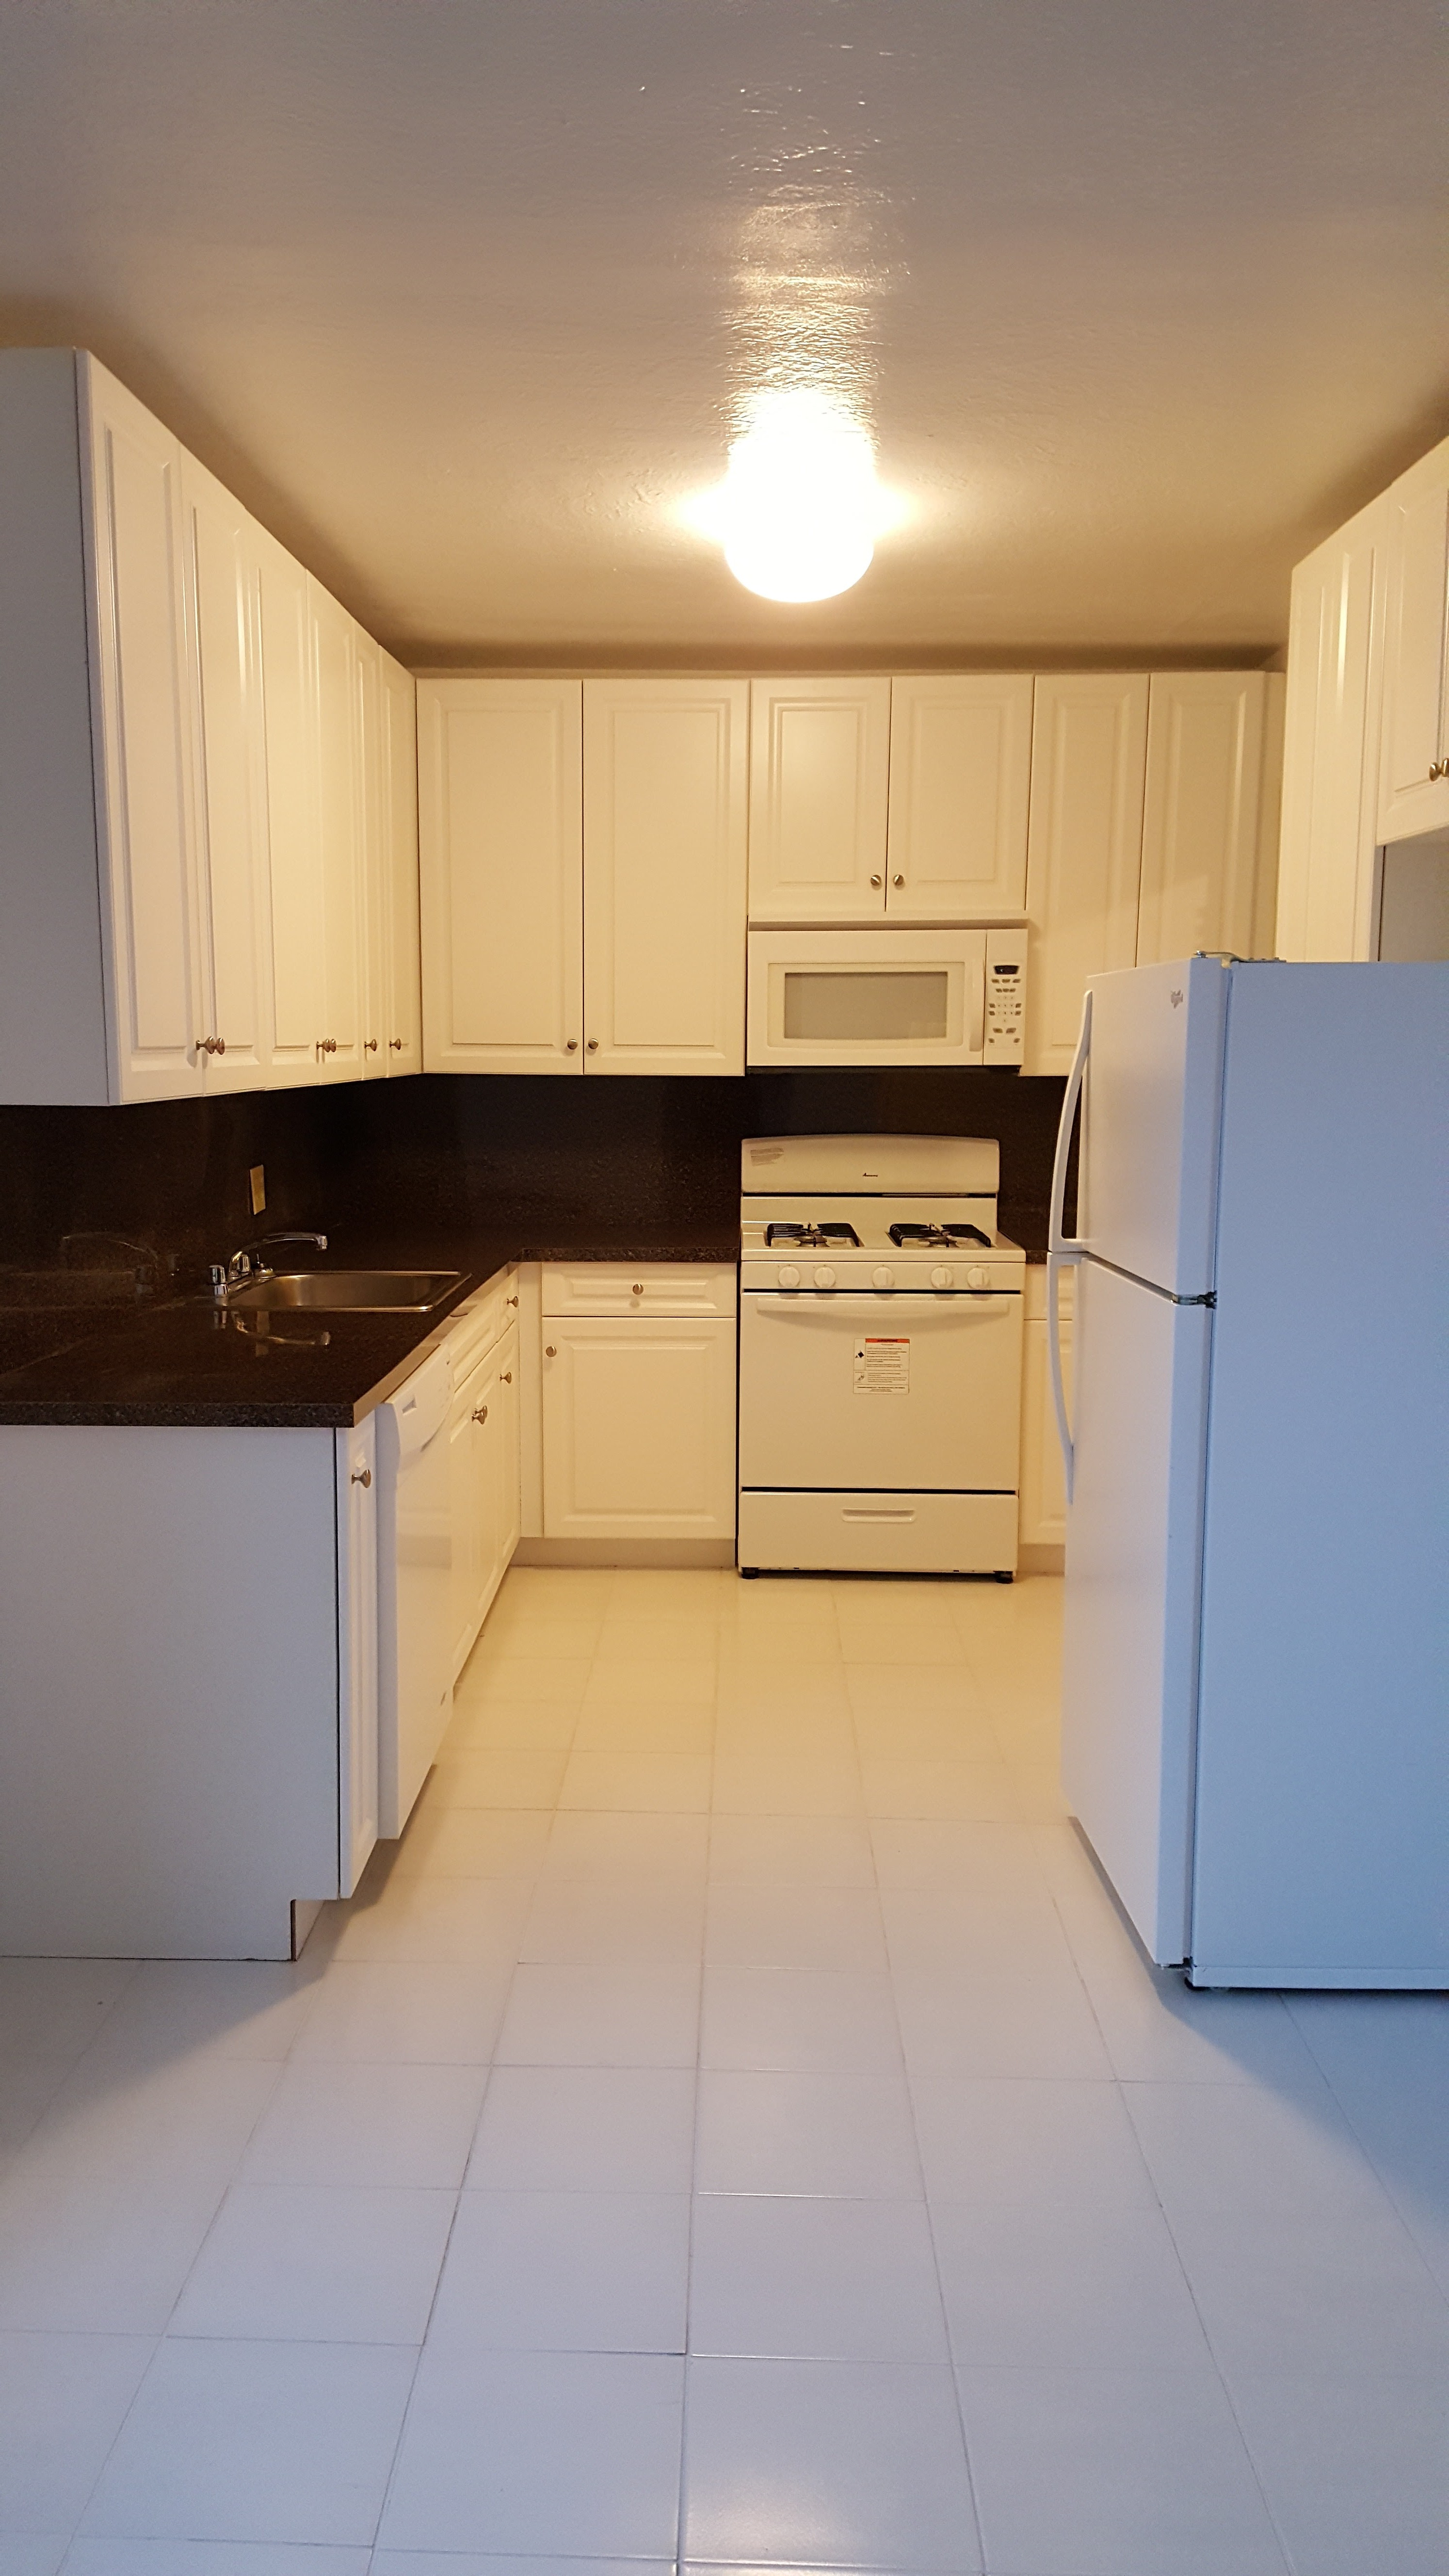 2728 henry hudson pkwy b75 bronx ny 10463 2 bedroom - 1 bedroom apartment for rent in bronx ...